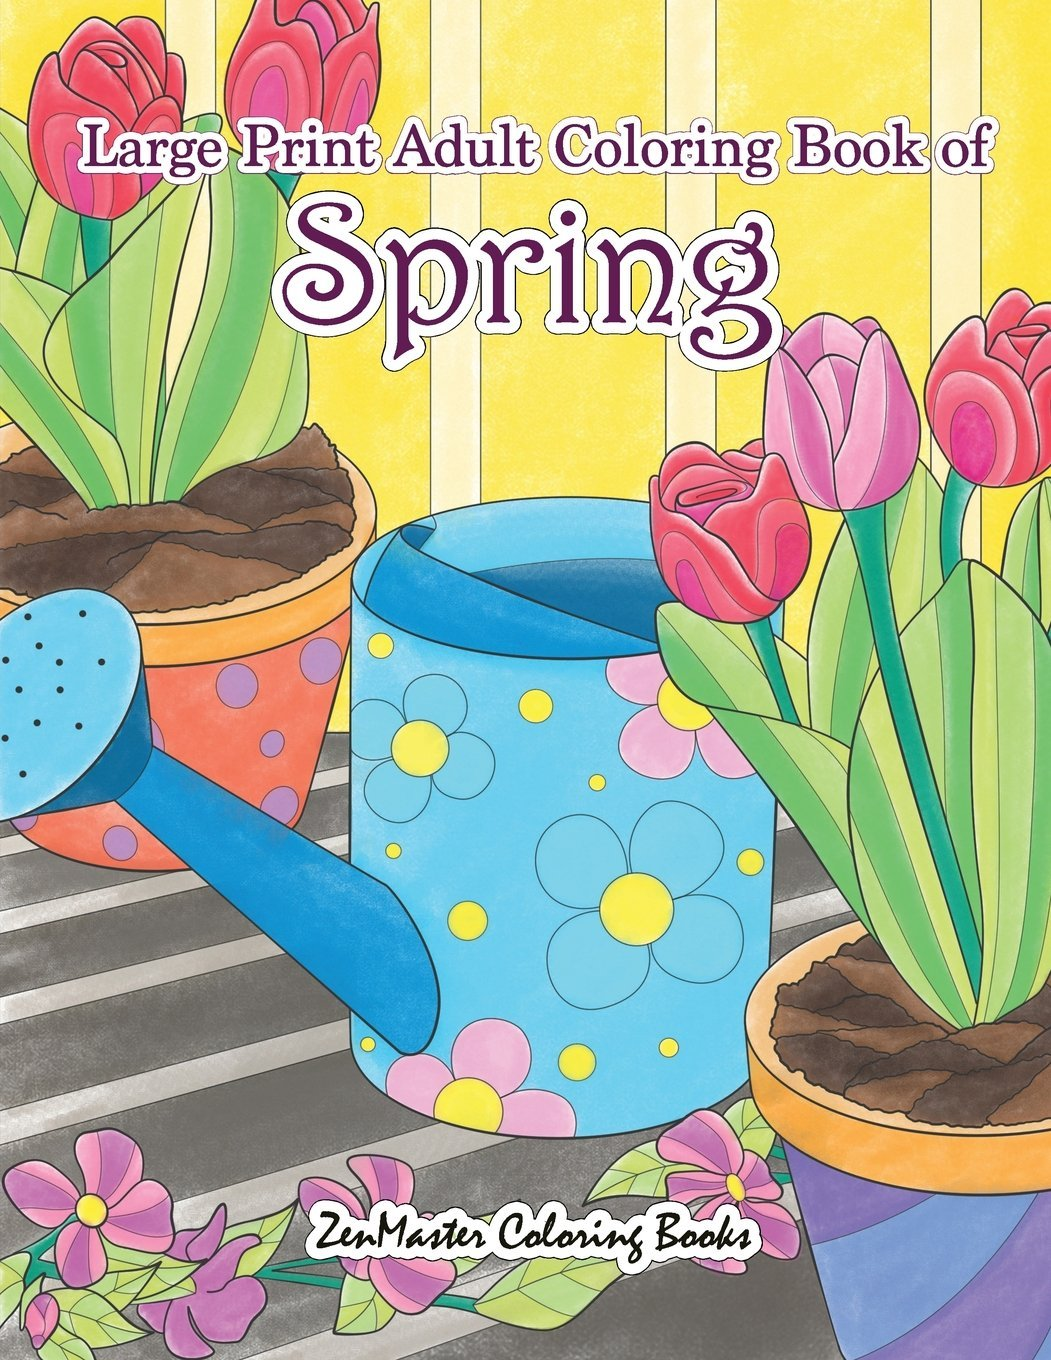 Large Print Adult Coloring Book of Spring: An Easy and Simple Coloring Book for Adults of Spring with Flowers, Butterflies, Country Scenes, Designs, ... (Easy Coloring Books For Adults) (Volume 12) Paperback – Large Print, February 12, 2018 ZenMaster Color